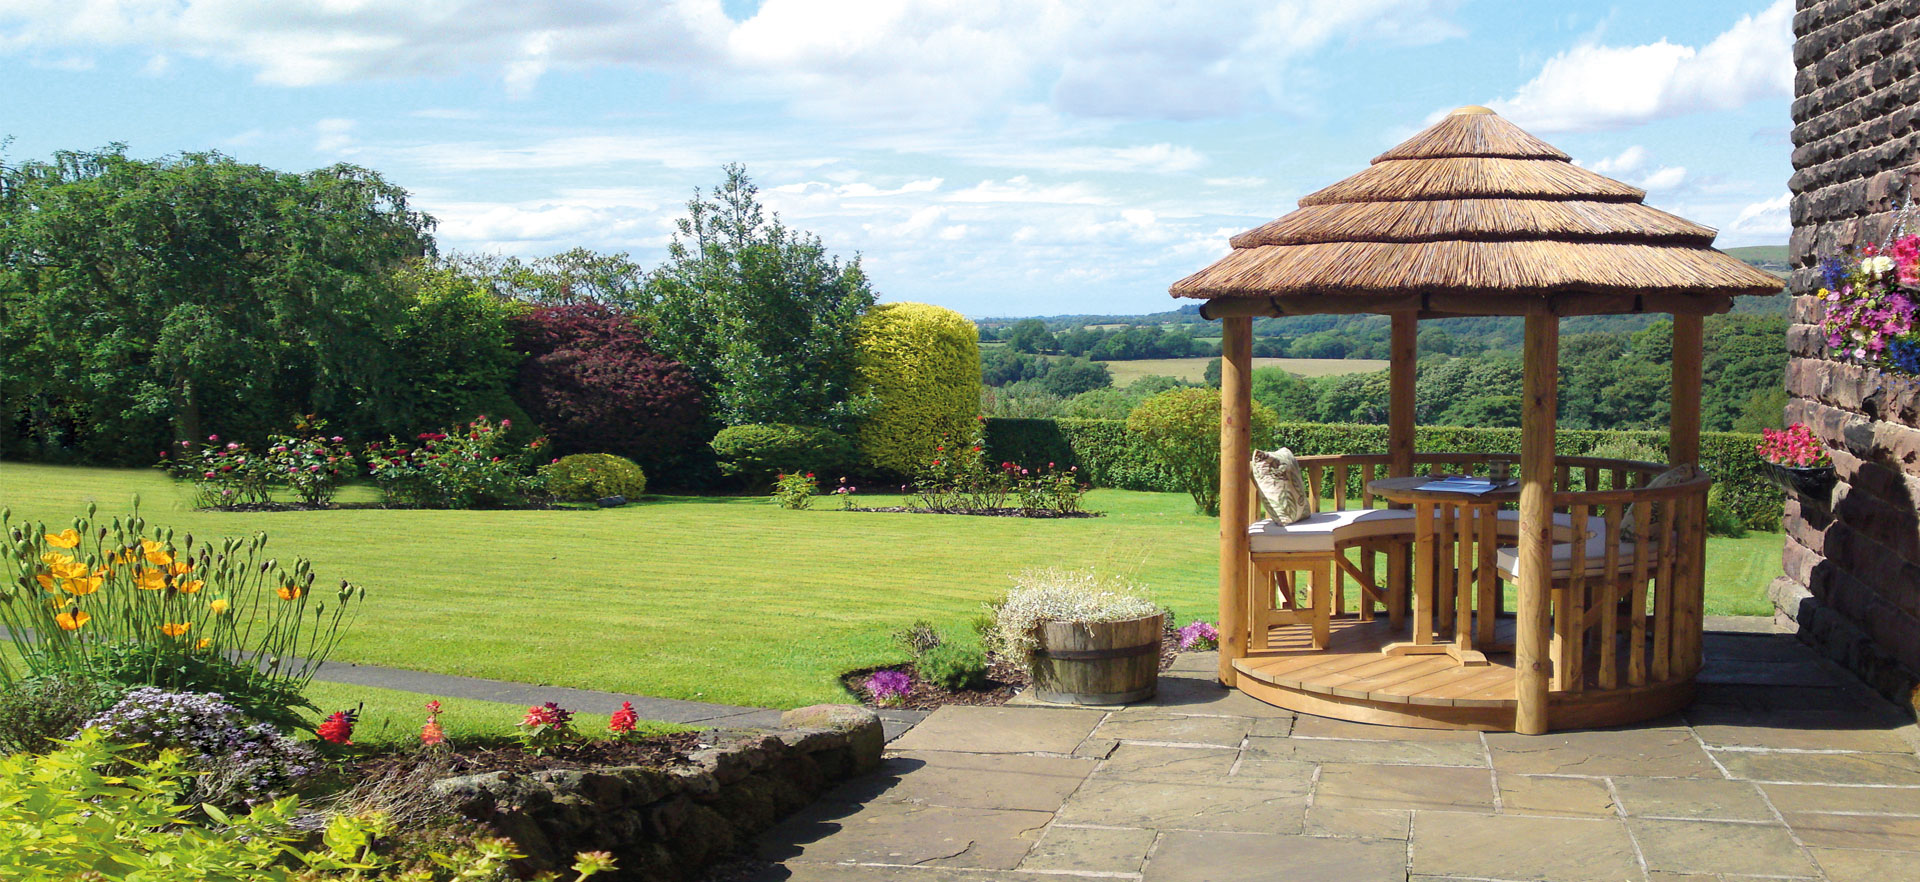 2 metre thatched roof gazebo overlooking large open plan garden and fields